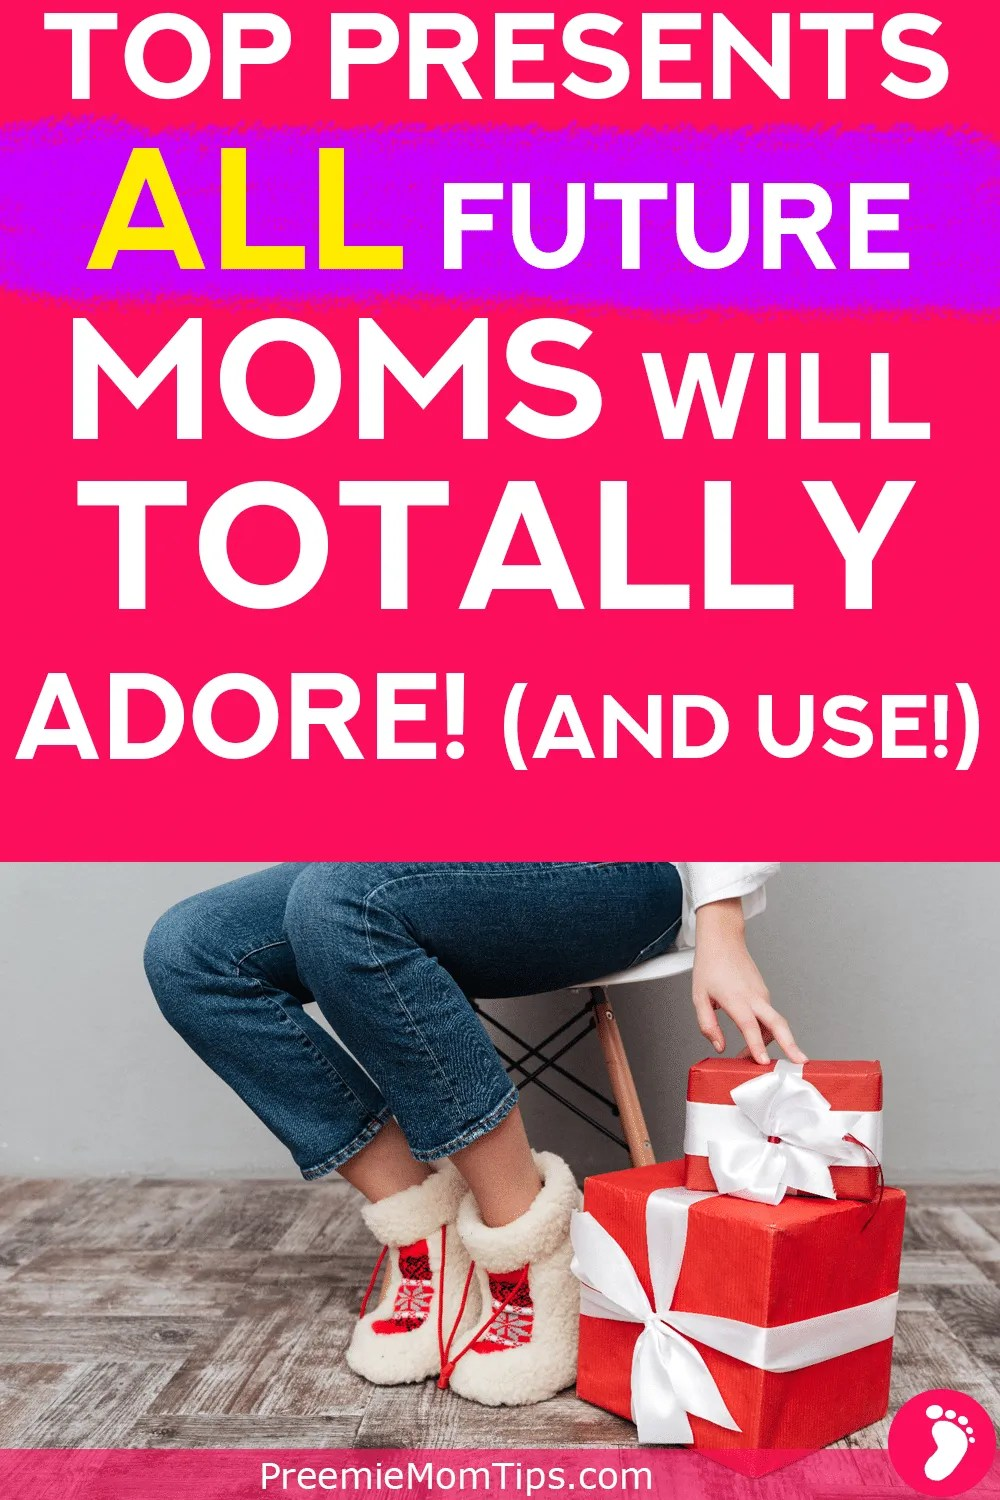 Pregnancy is such a wonderful time, wouldn't you like it if people actually got you presents you'll totally use? Here's a pregnancy gift guide full of lovely, USEFUL, ideas for every expectant mom!